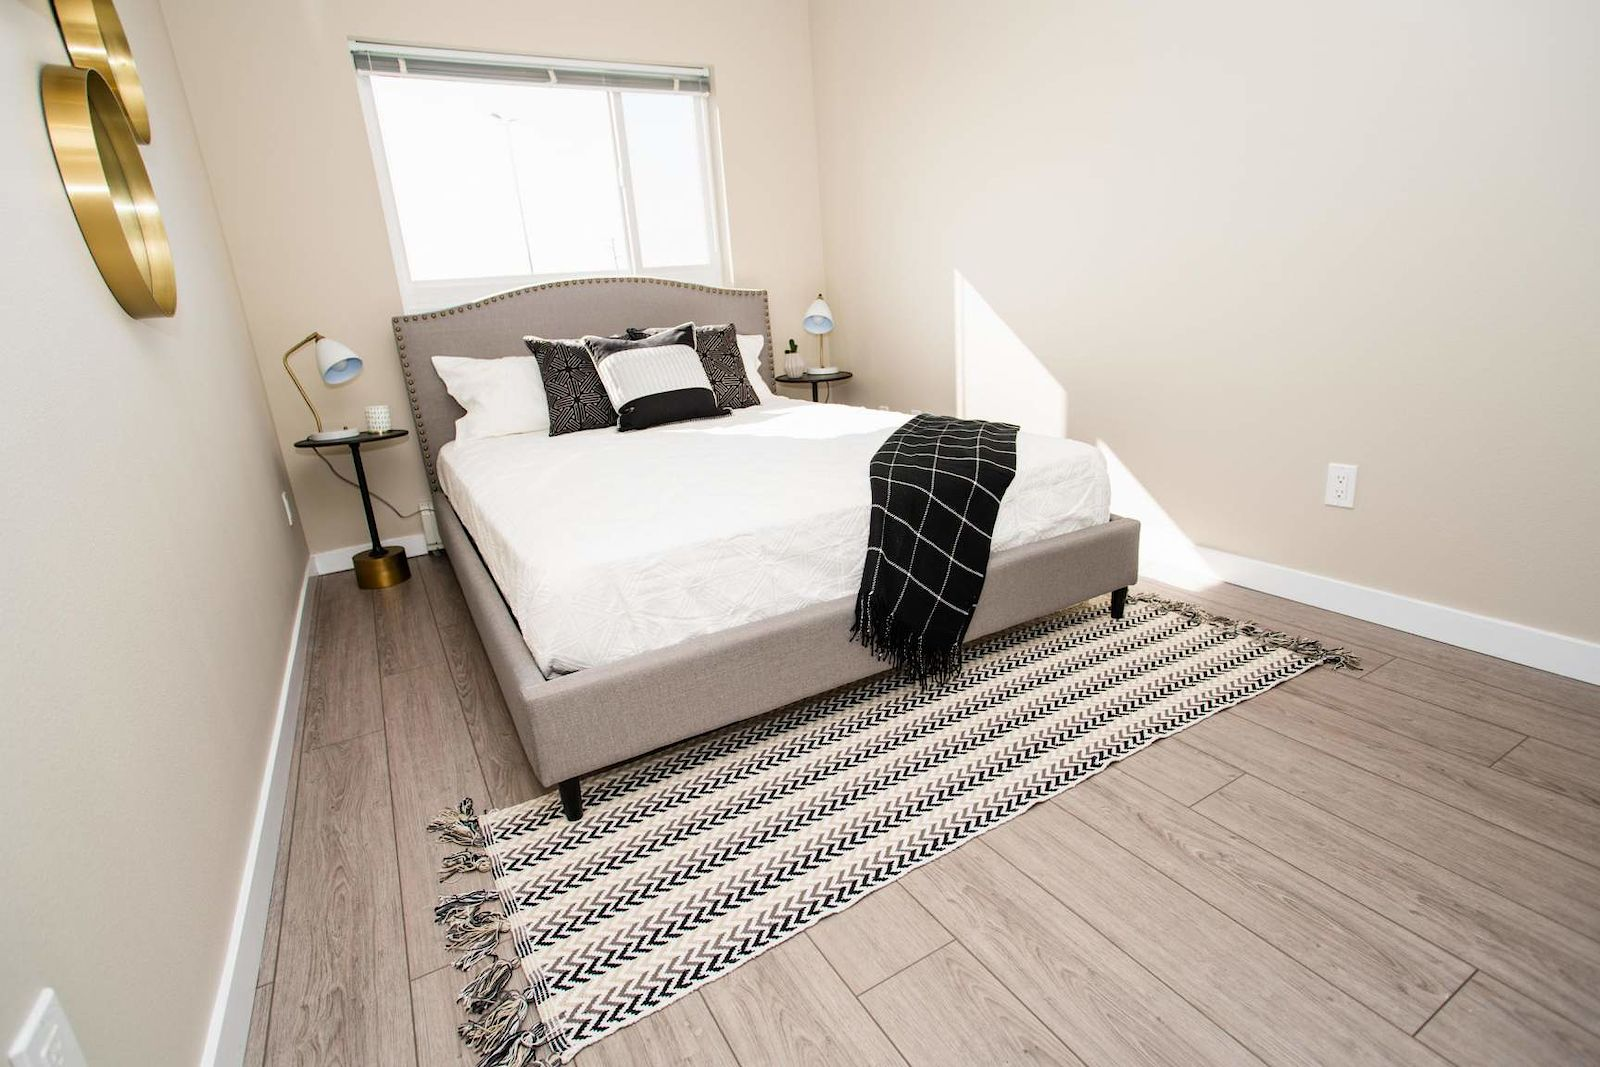 Regina Pet Friendly Shared For Rent  The Greens on Gardiner  11 & 11  Bedroom Apartments  ID 11951193 - RentFaster.ca